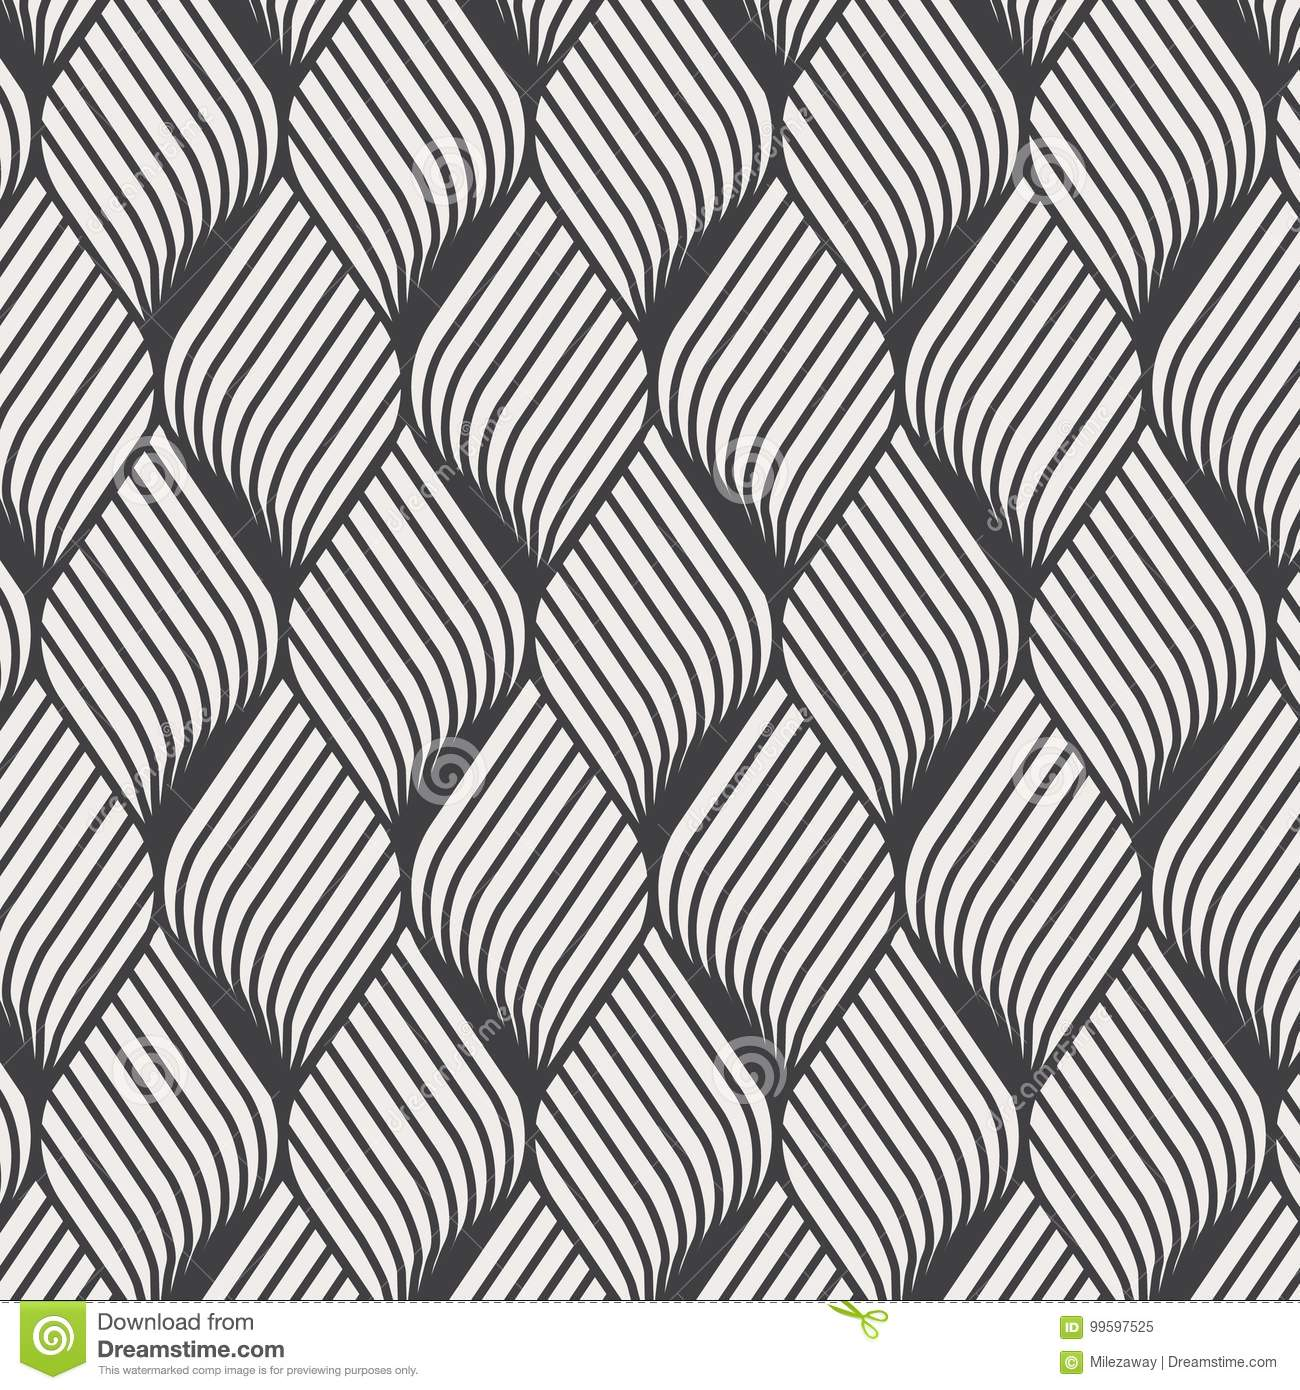 Abstract flower ripple pattern. Repeating vector texture. Wavy graphic background. Simple geometric waves.